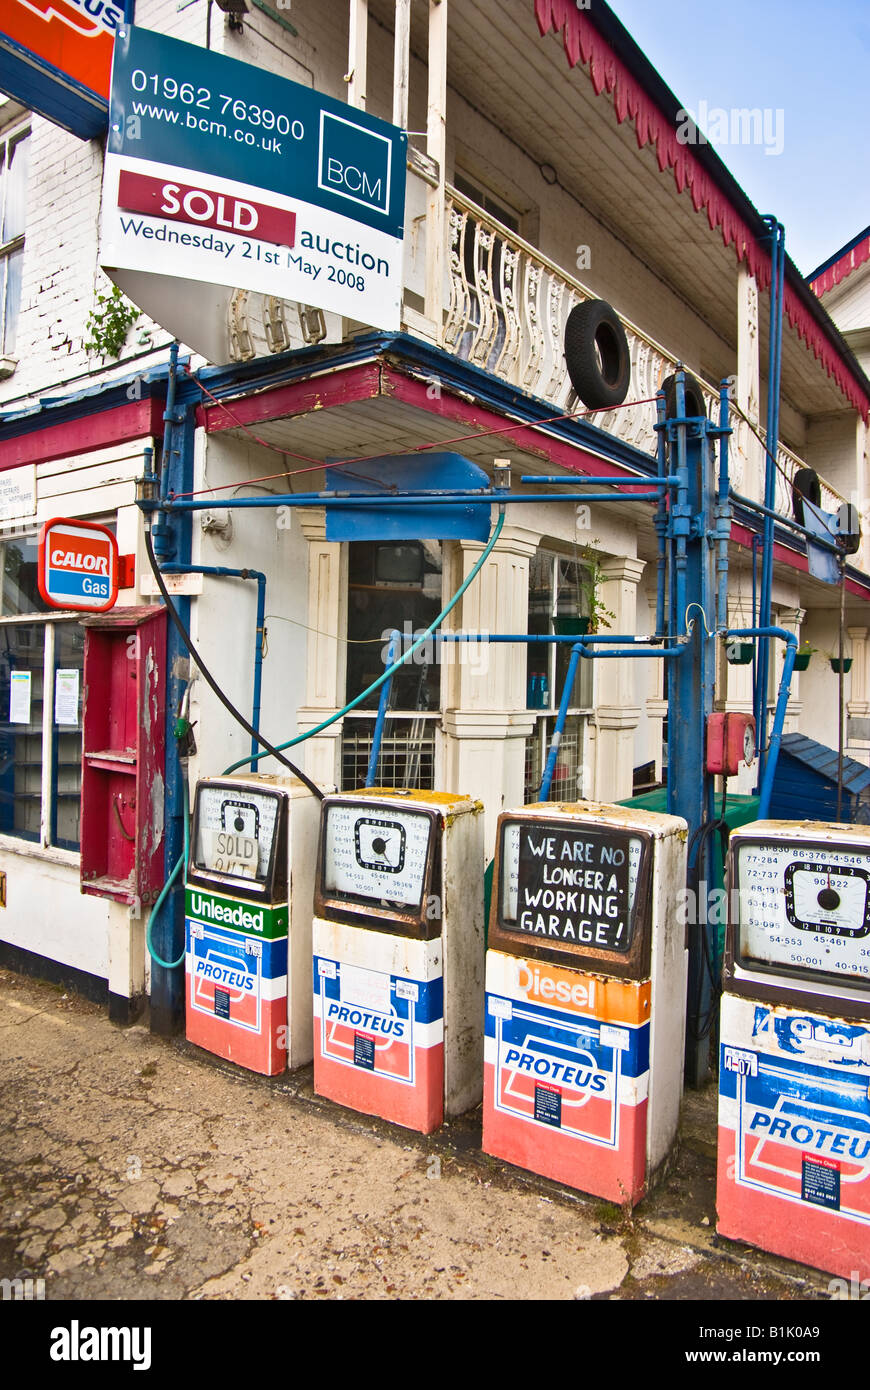 Defunct garage and petrol station sold at auction - Stock Image